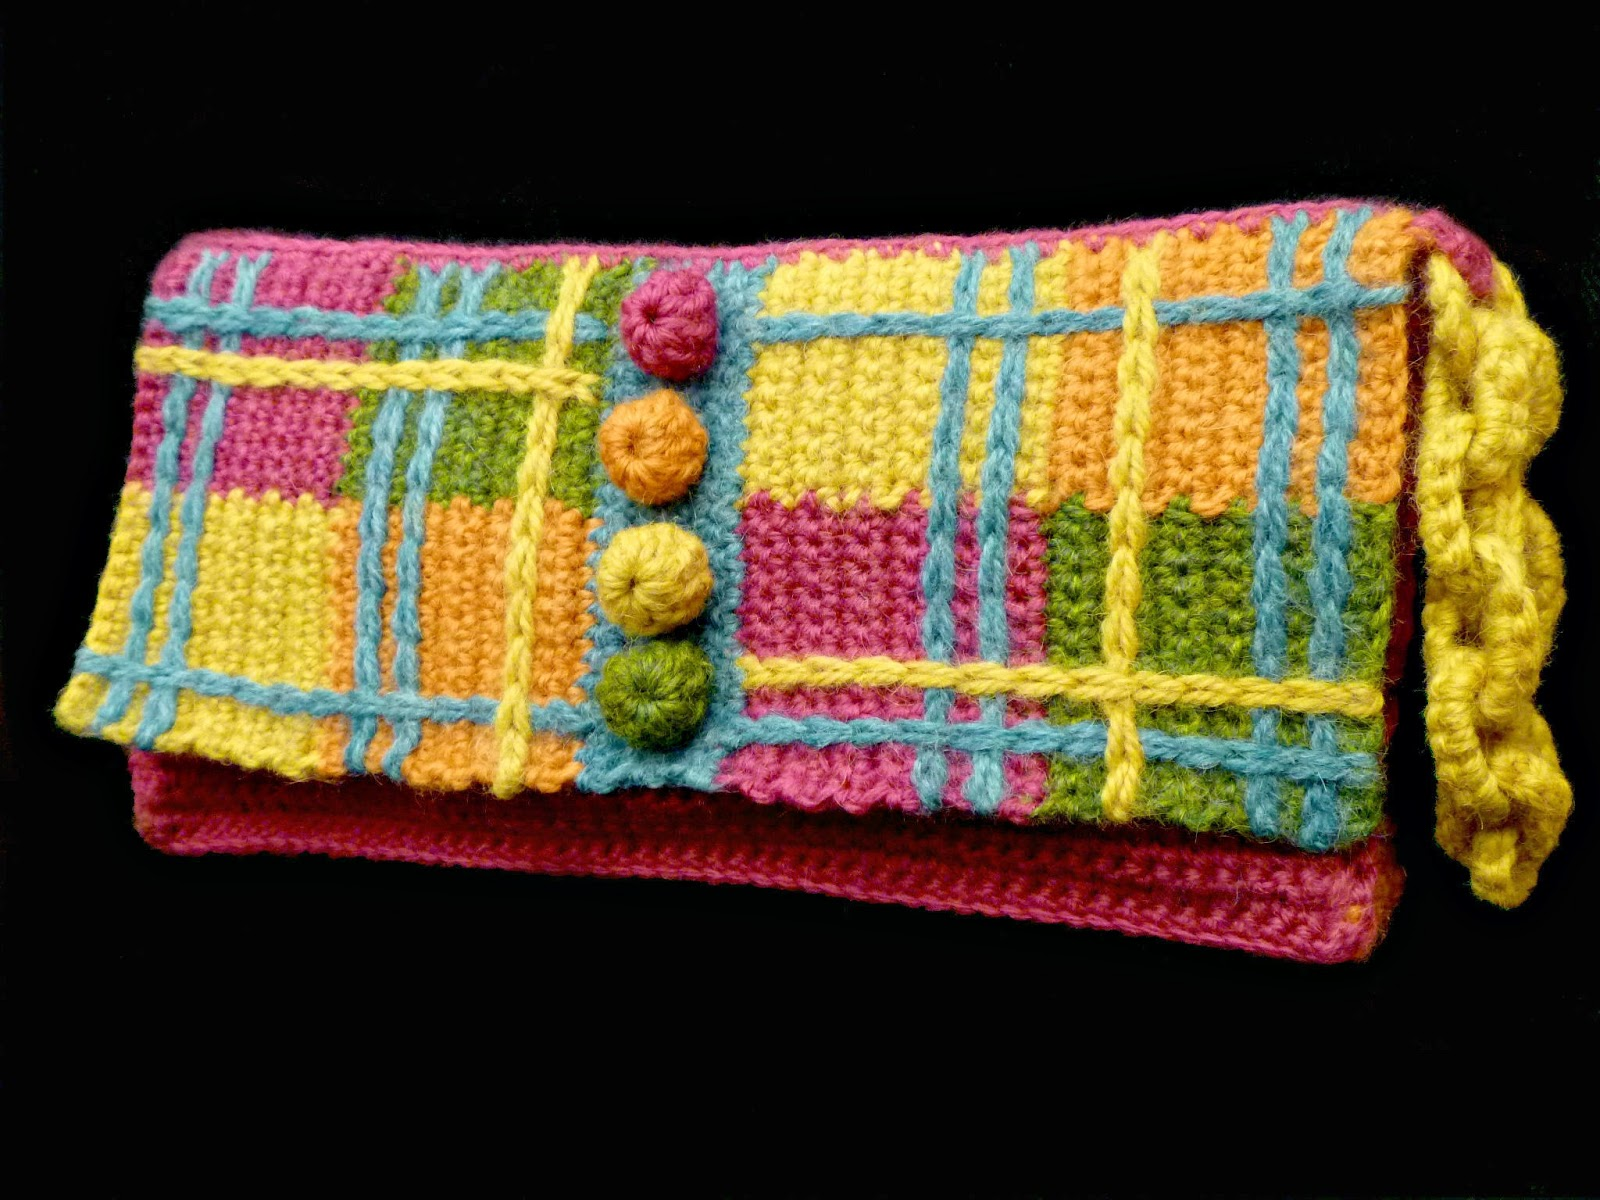 Crochet Wristlet Purse Pattern : ... runway crochet book is the plaid wristlet purse this purse evolved so